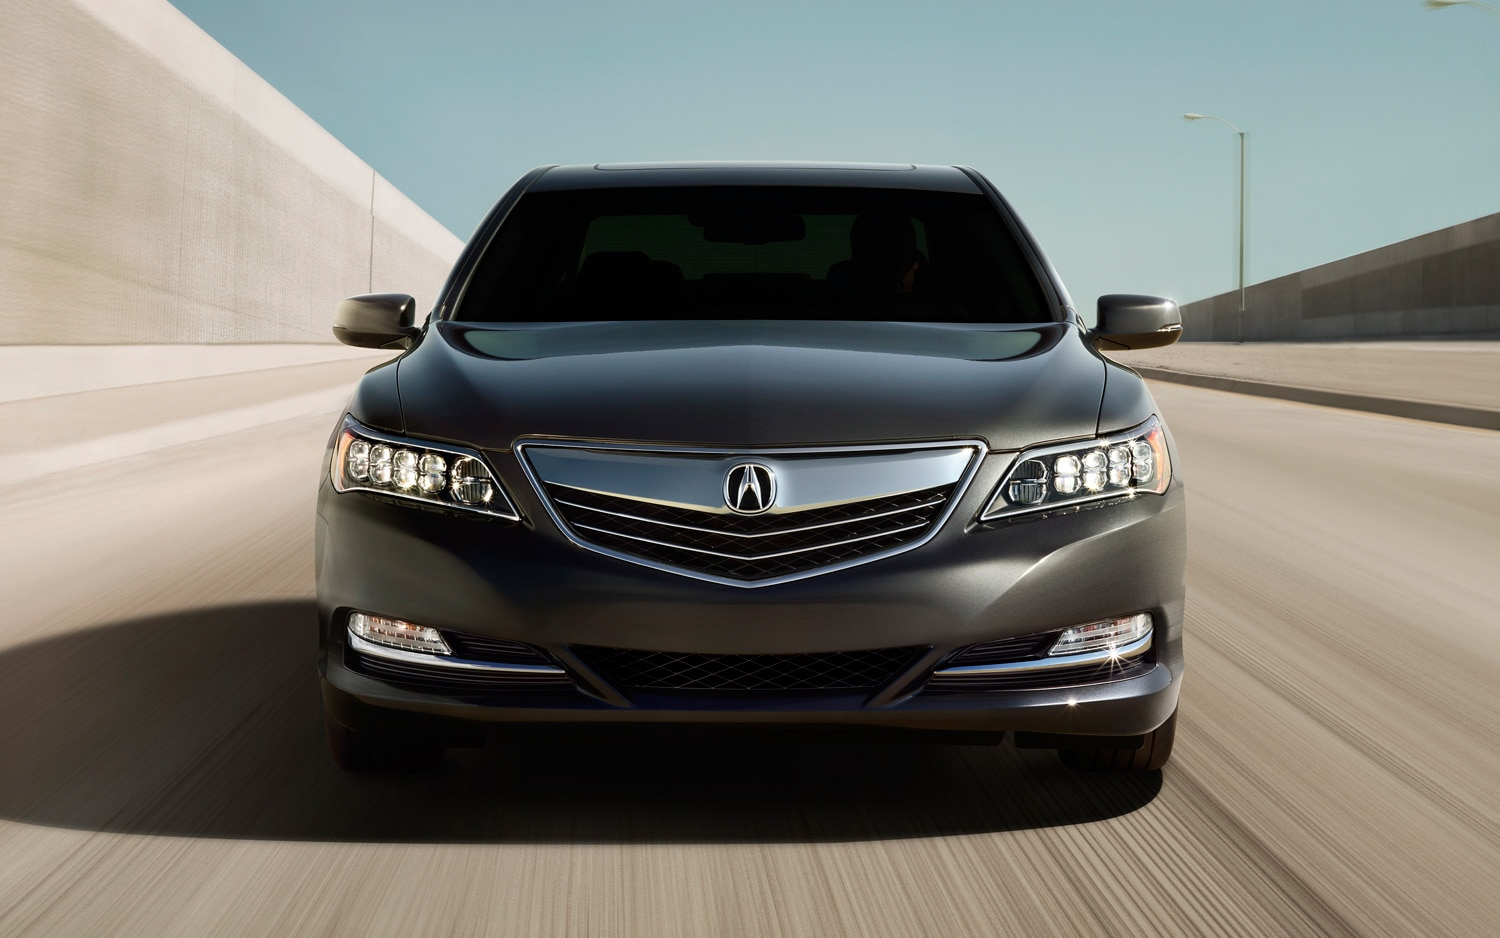 2014 acura rlx pricing announced ranges from 49 345 to 61 345. Black Bedroom Furniture Sets. Home Design Ideas